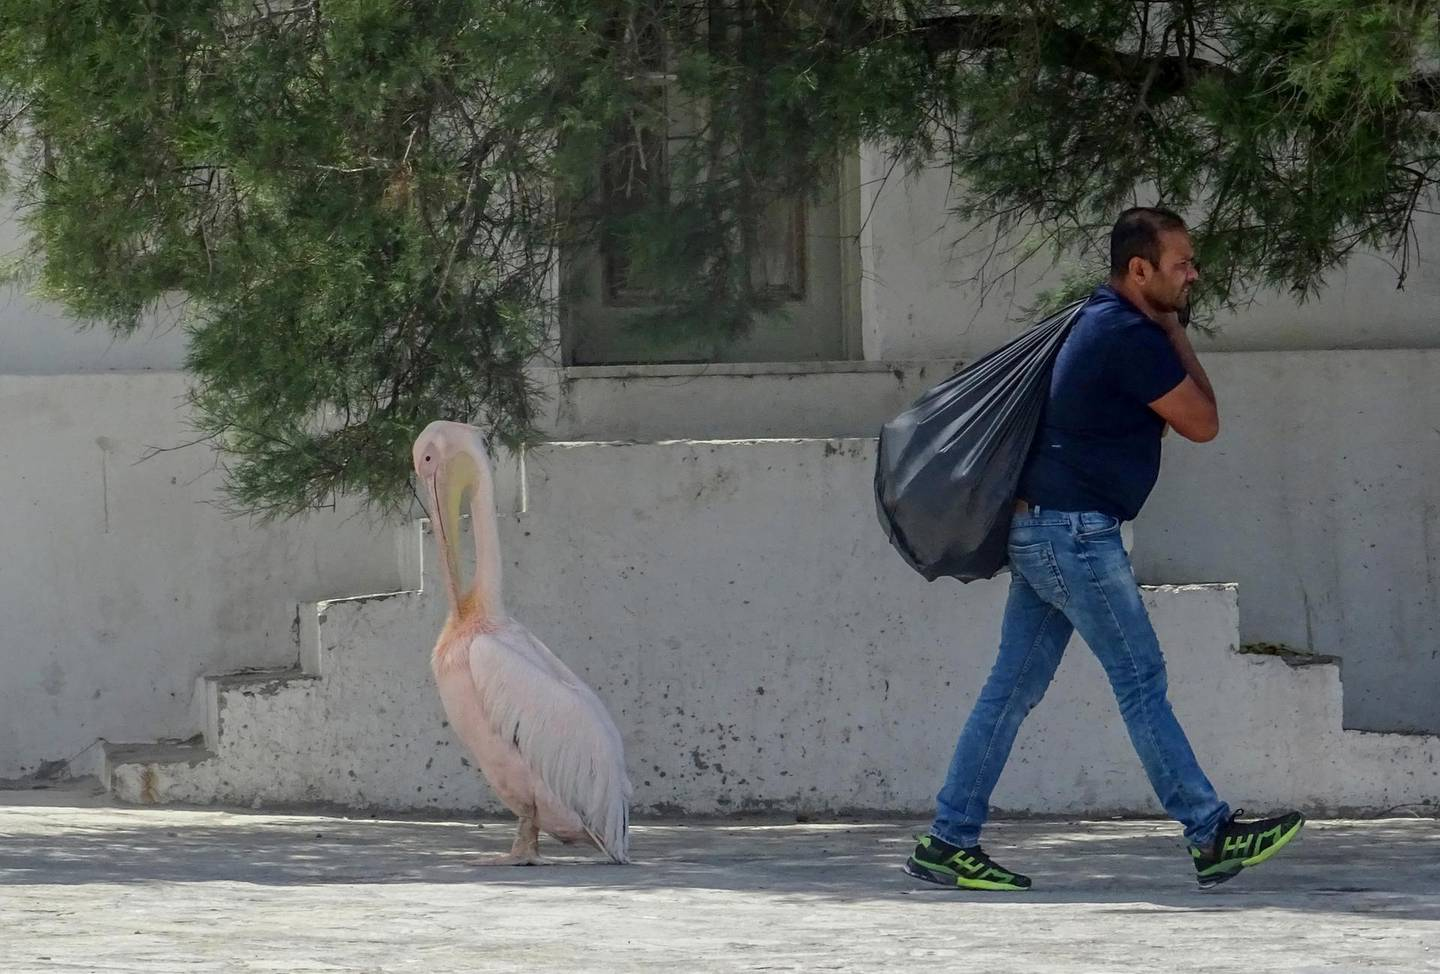 In this Saturday, June 7, 2020 photo, a worker walks past a pelican in the main town of the Greek island of Mykonos, Greece. Business owners and locals officials on the Greek holiday island of Mykonos, a popular vacation spot for celebrities, club-goers, and high rollers, say they are keen to reopen for business despite the risks of COVID-19 posed by international travel. Greece will officially launch its tourism season Monday, June 15, 2020 after keeping the country's infection rate low. (AP Photo/Derek Gatopoulos)